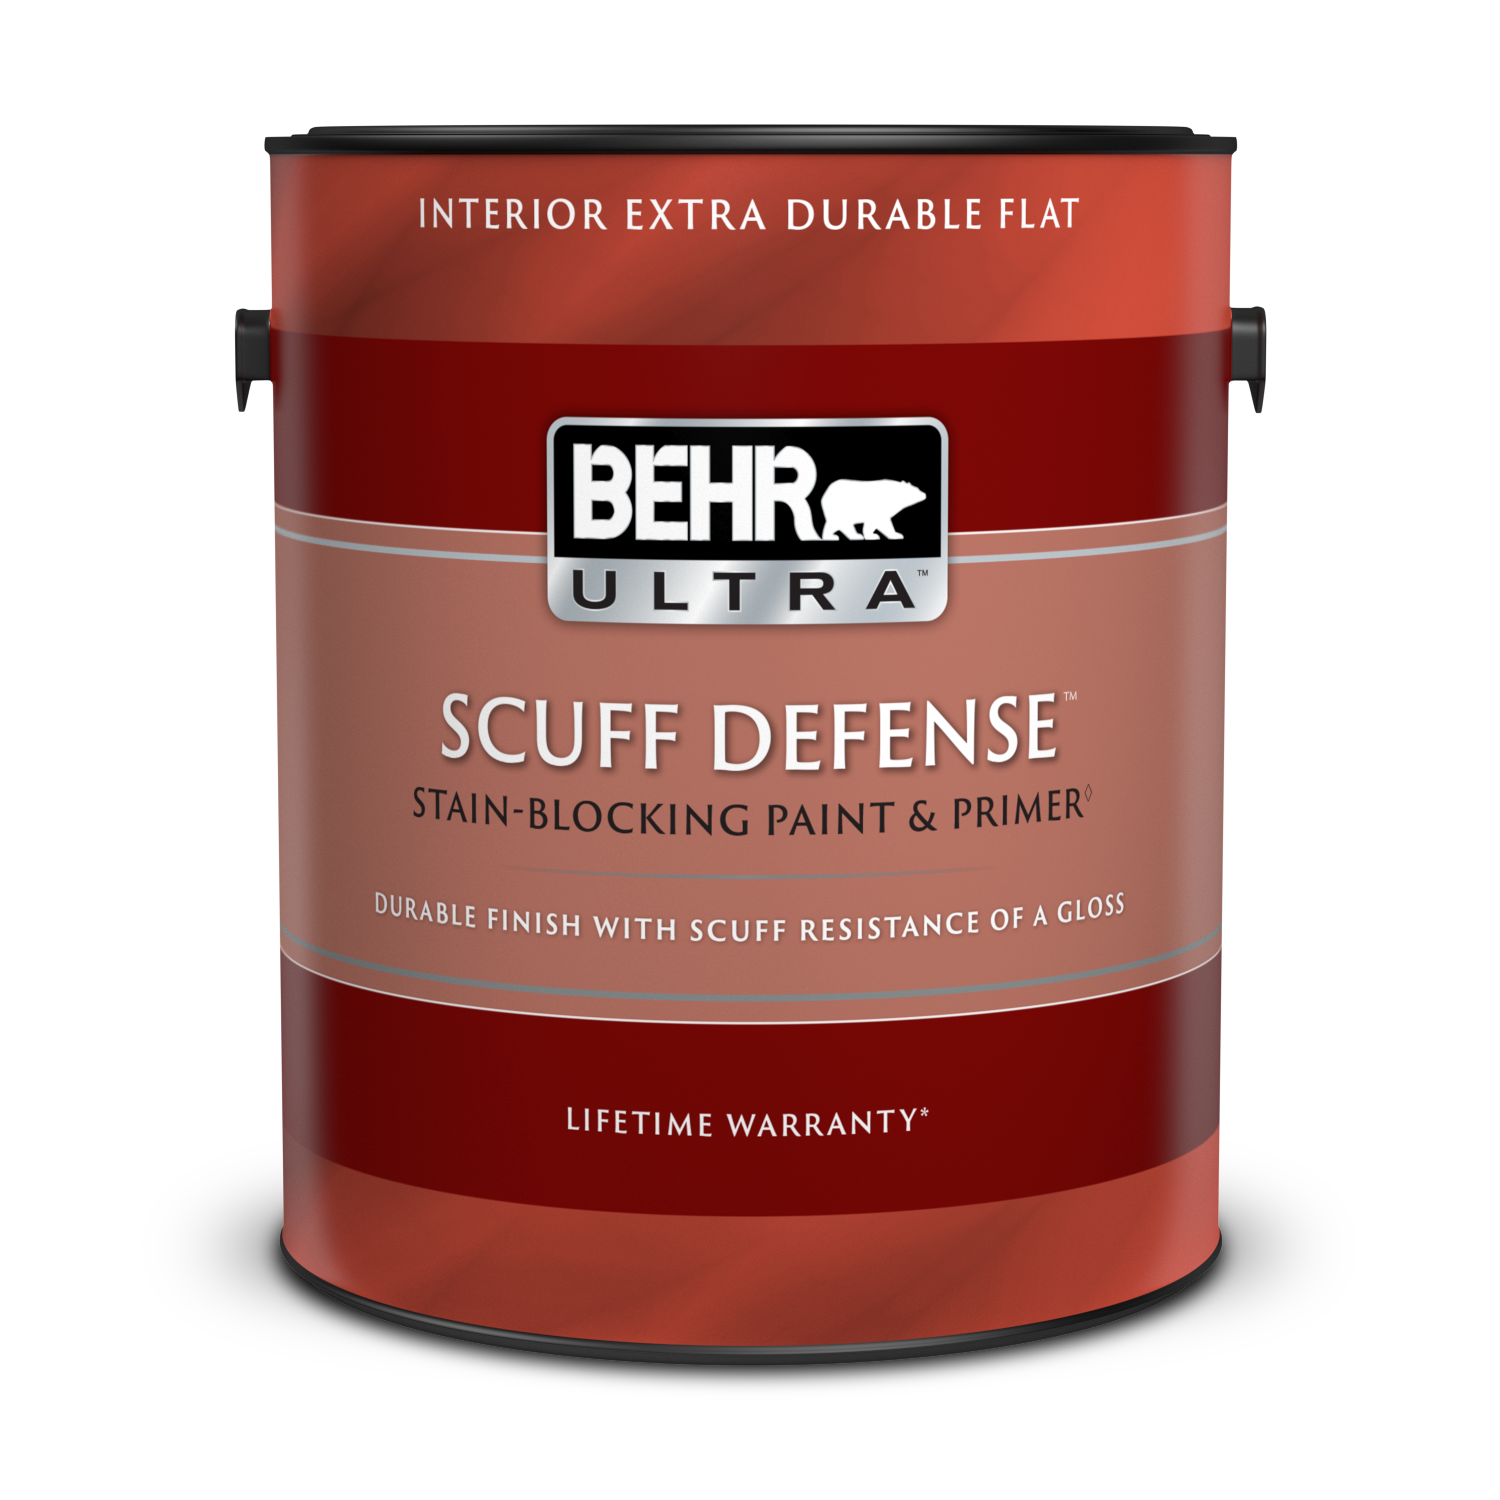 1 gal can of Behr Ultra Scuff Defense Interior Extra Durable Flat paint